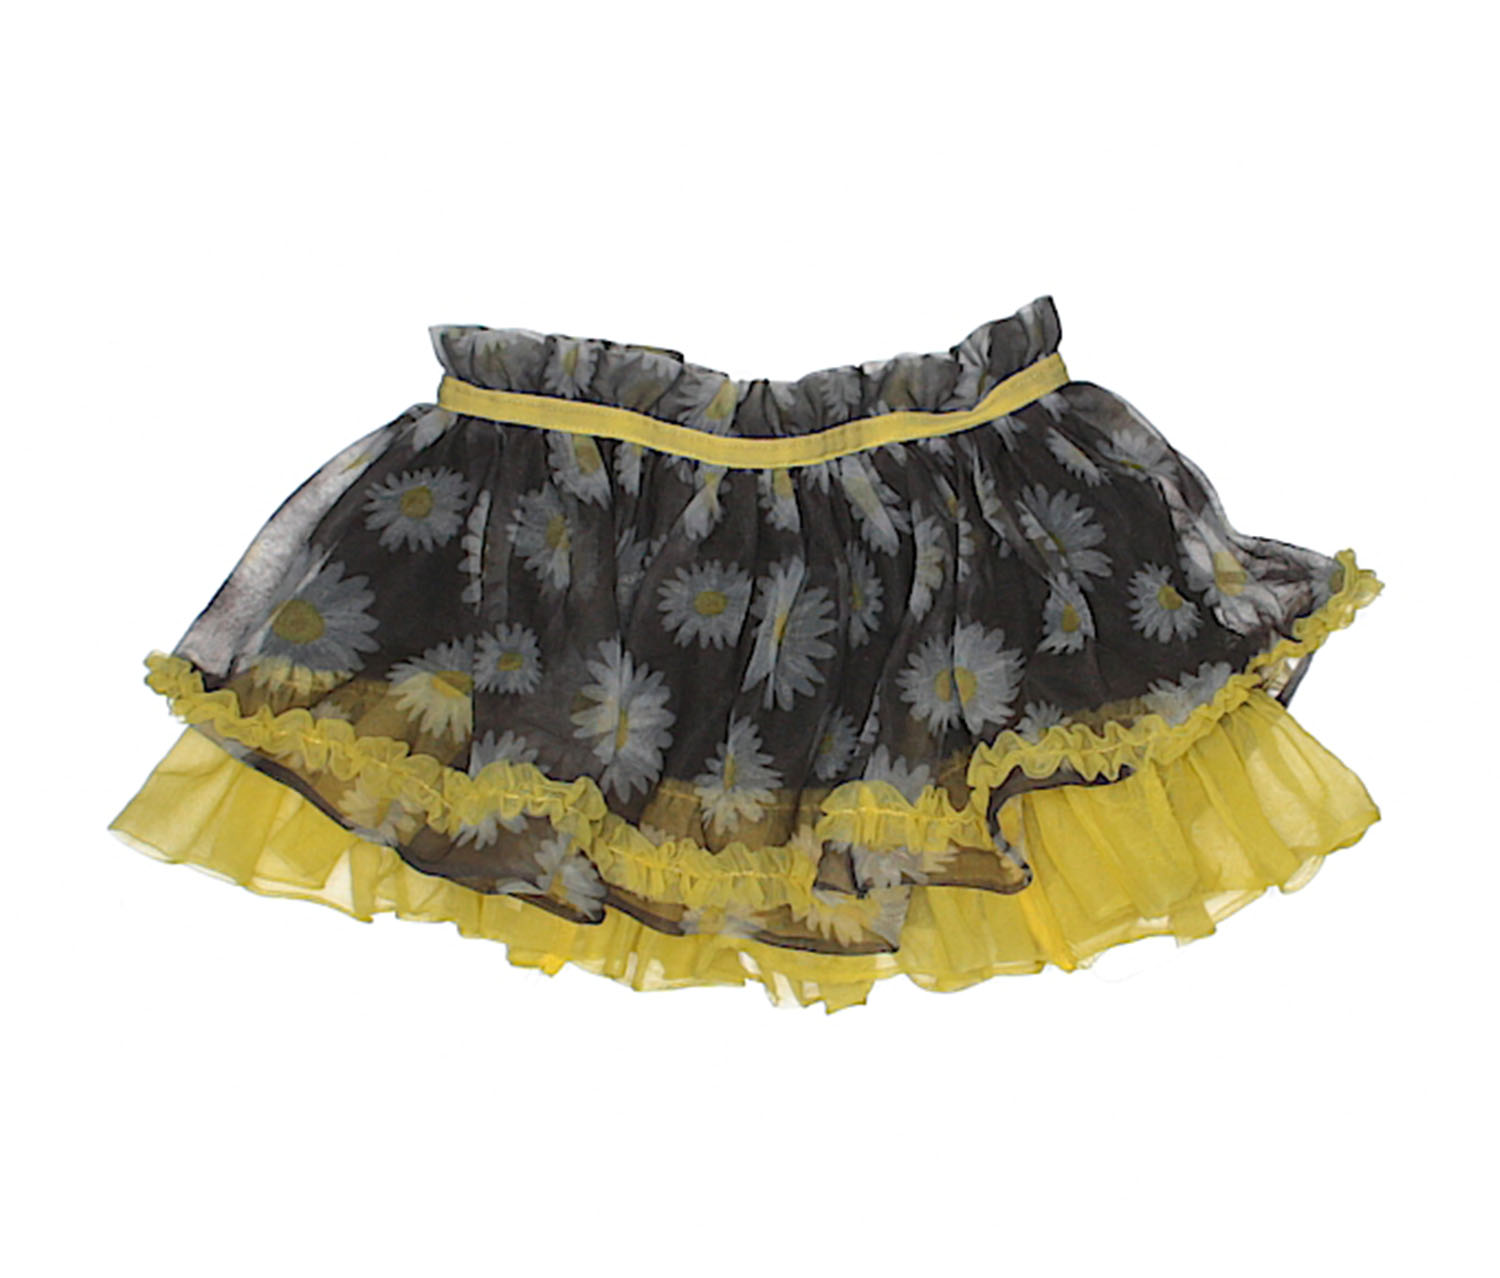 Baby Starters Baby Girl's Skirt, Yellow/Black